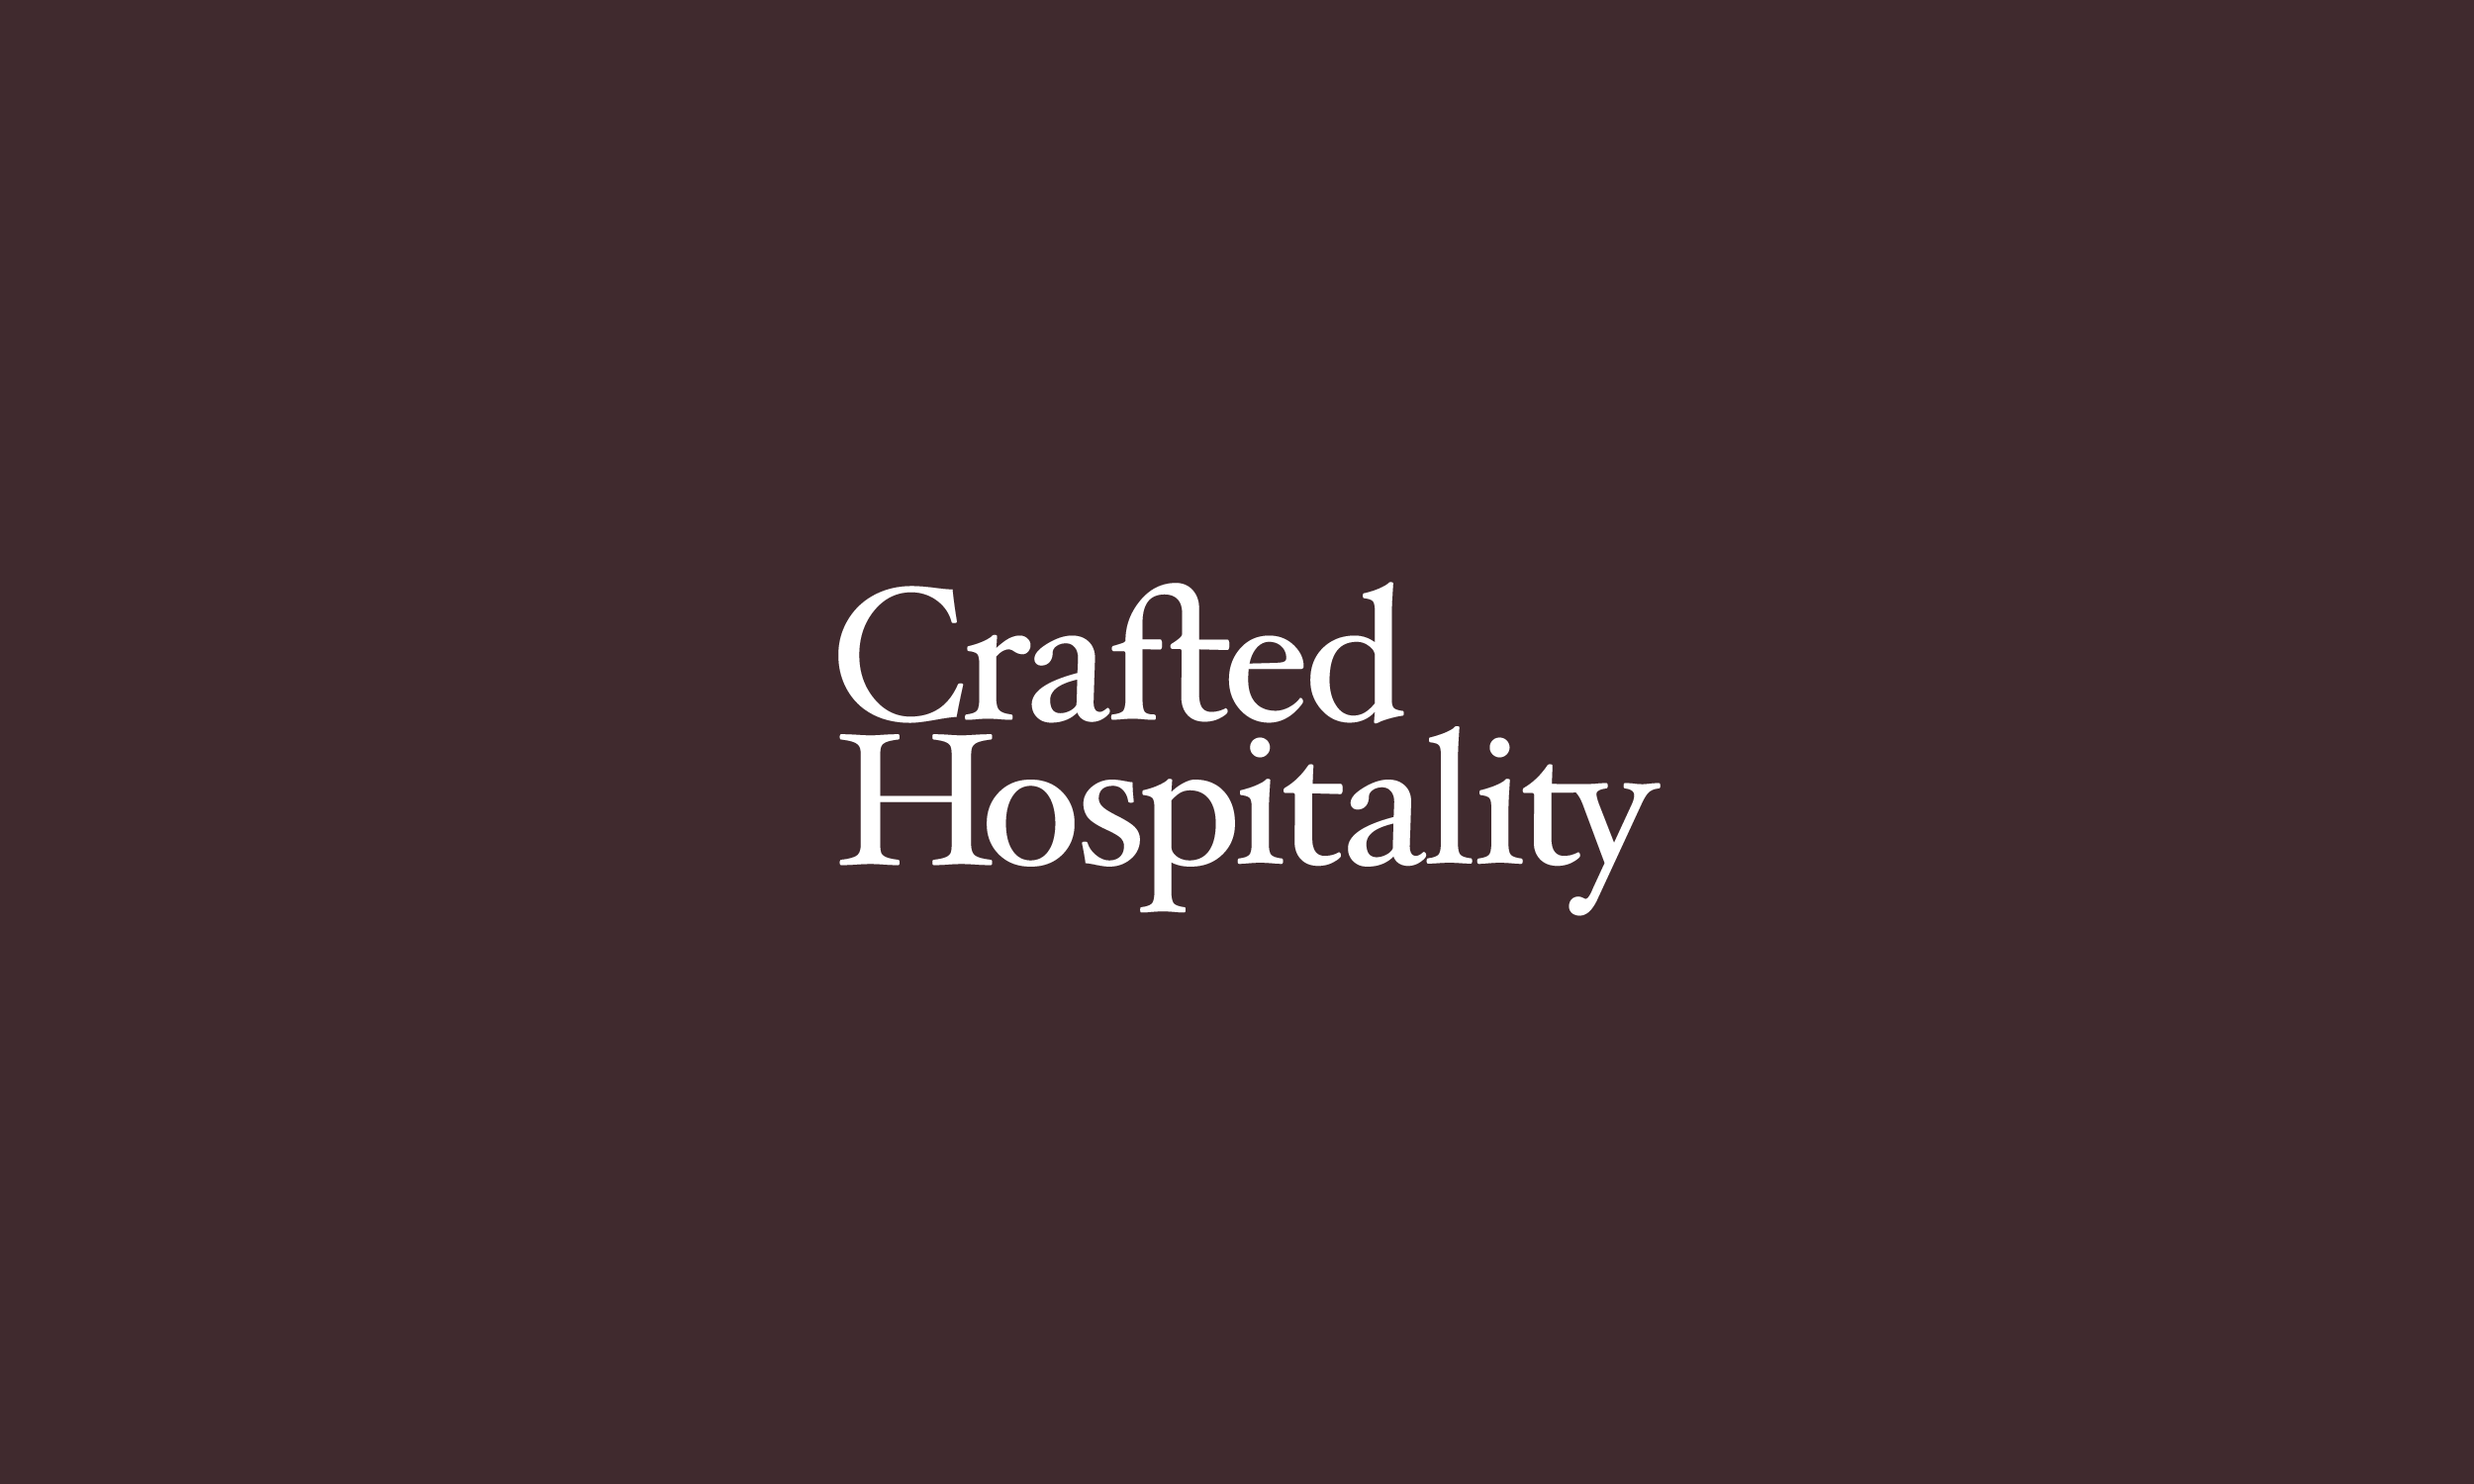 Crafted Hospitality / Restaurant Corp.